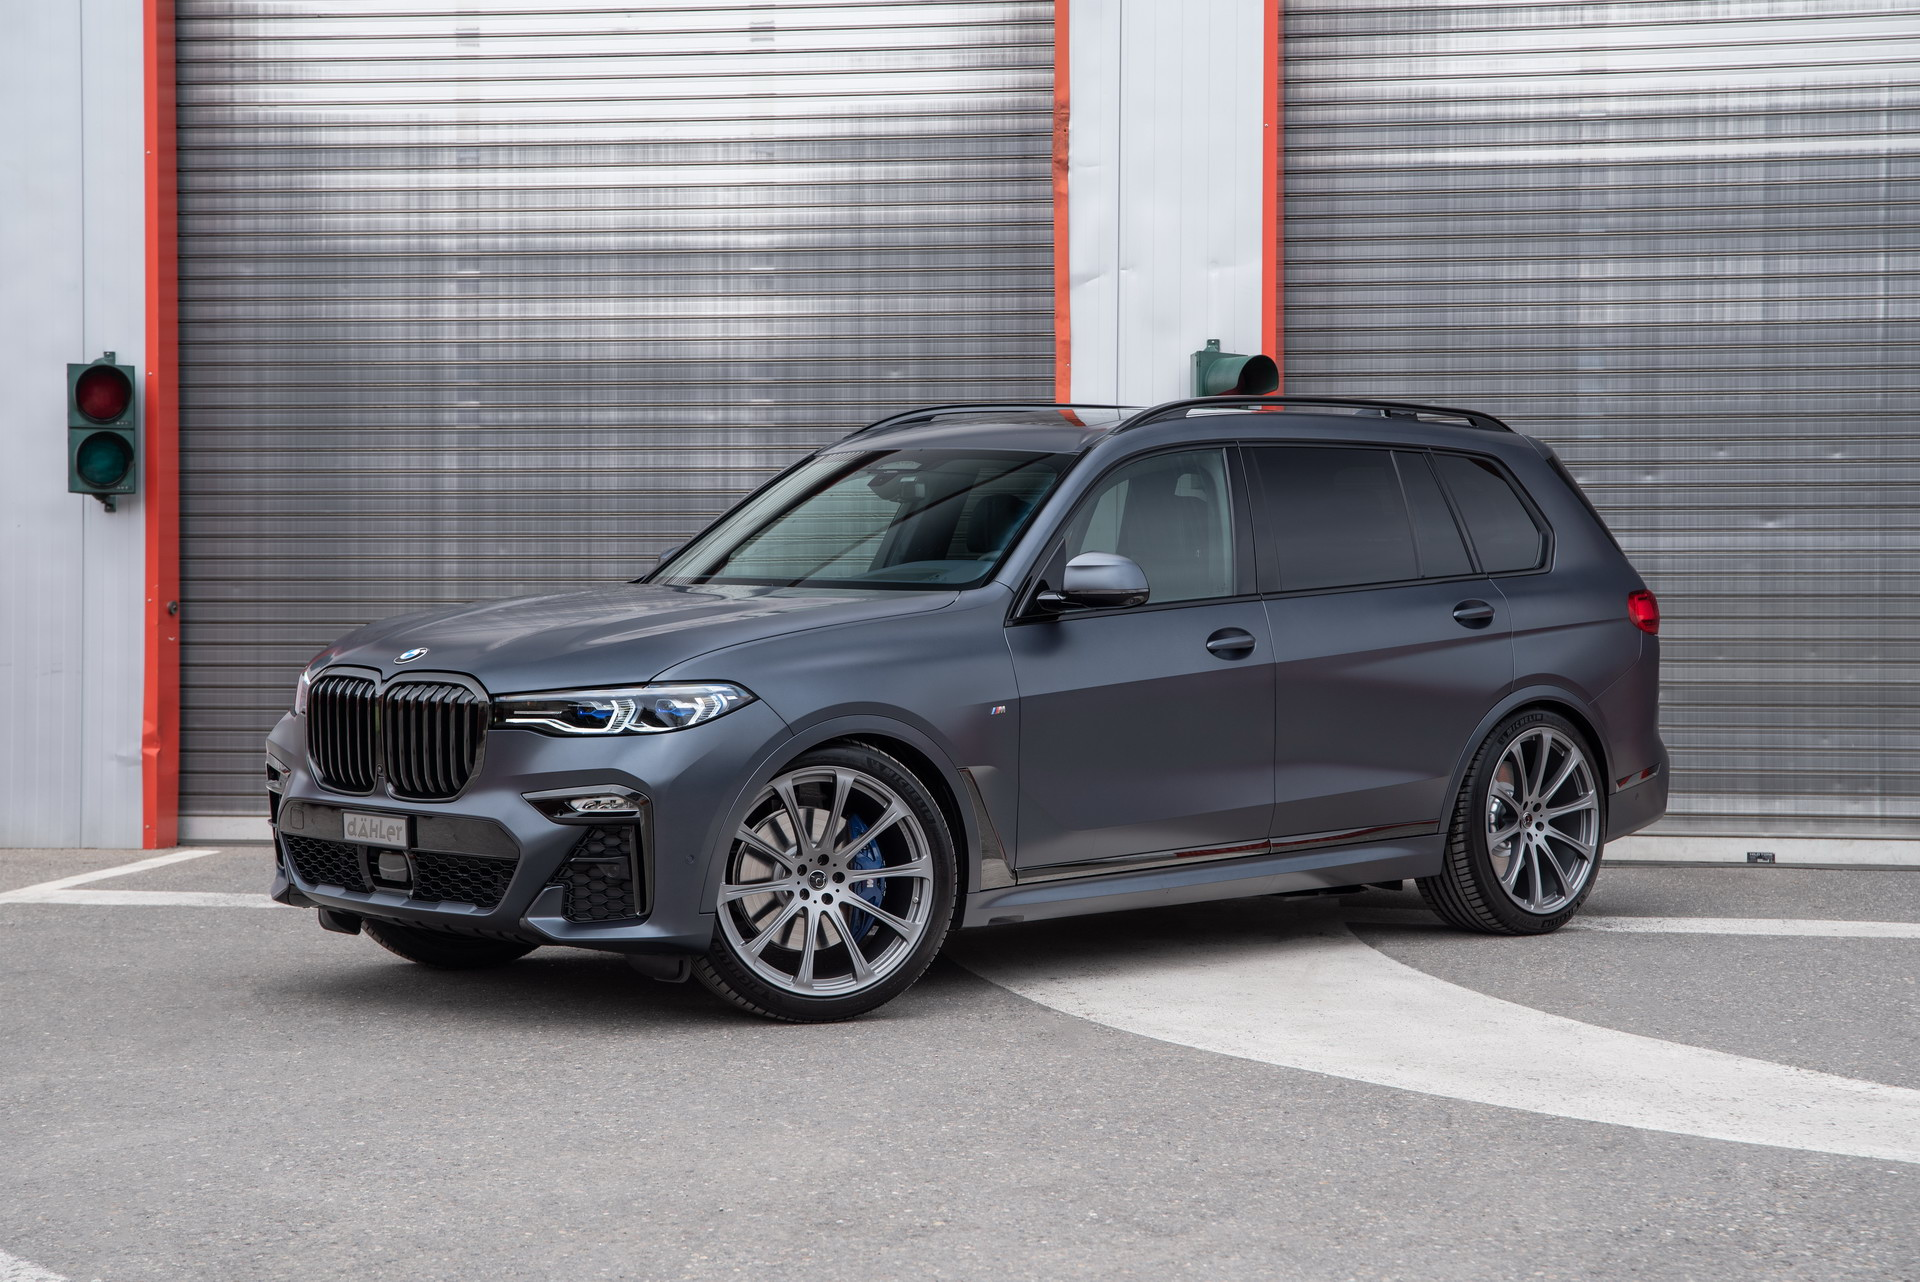 BMW must have felt that its X7 SUV was powerful enough not to develop an M version of it, but some owners beg to differ and go to tuner shops for a solution.